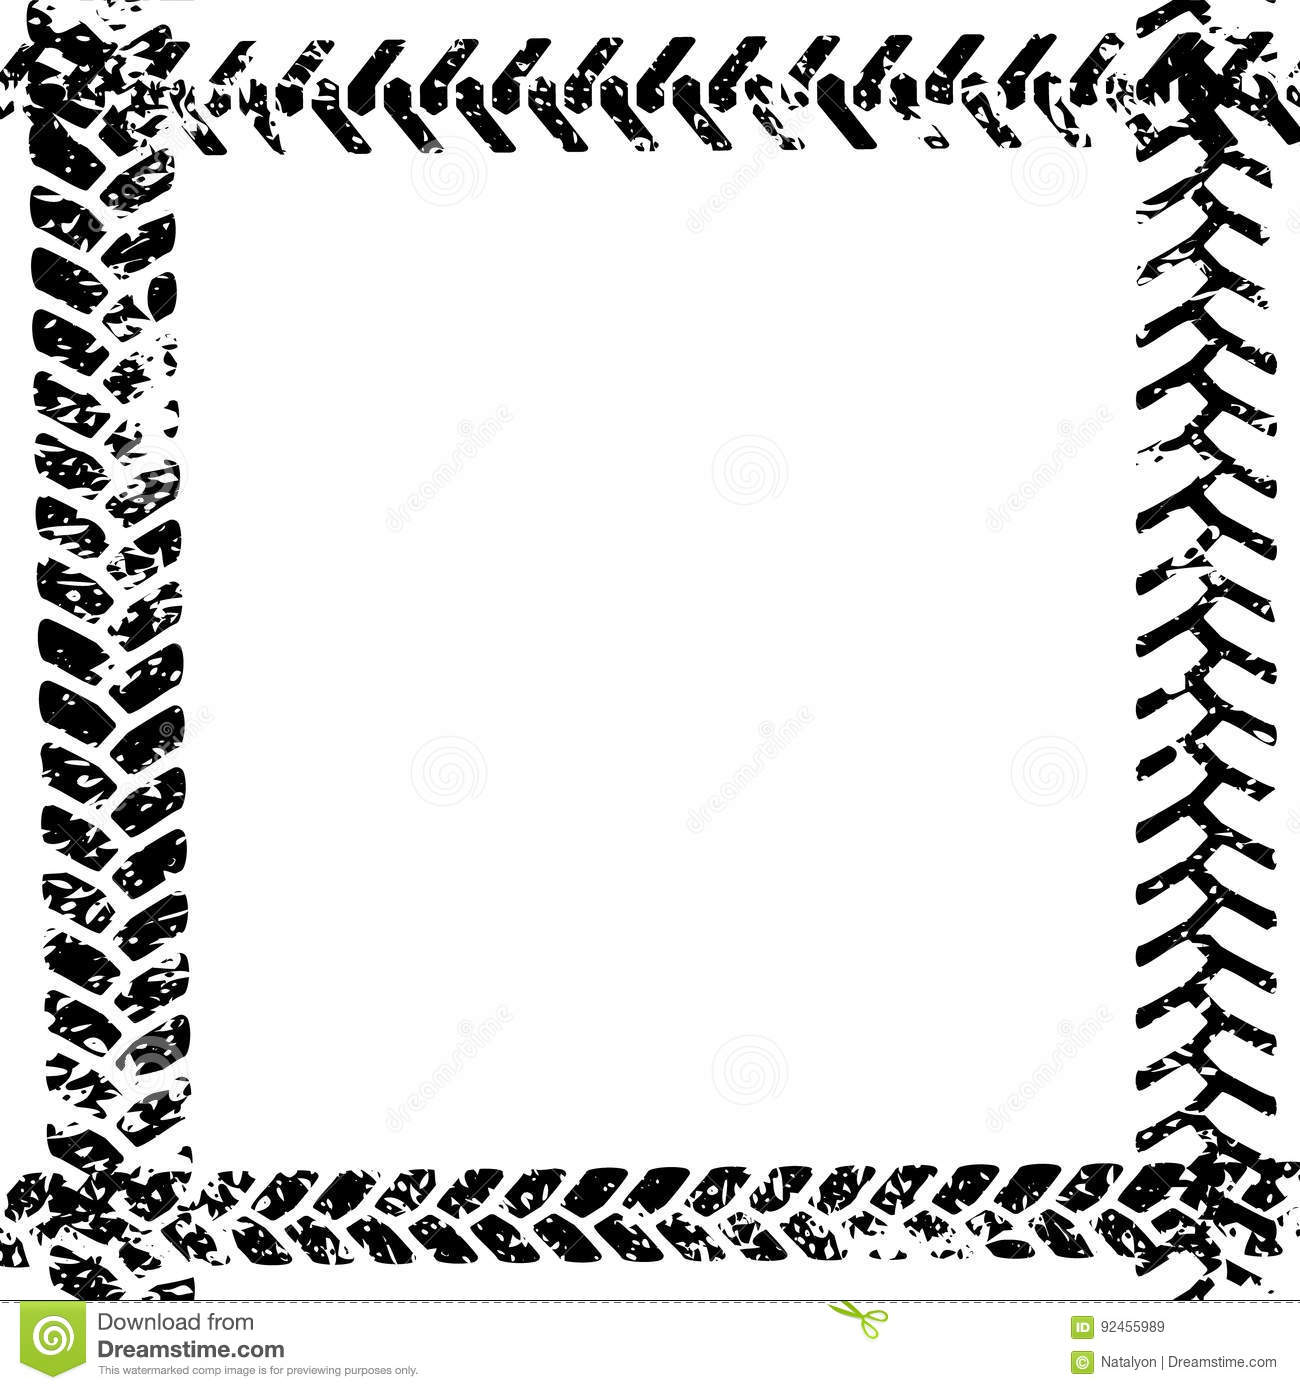 Black And White Tire Tread Protector Track On White Grunge